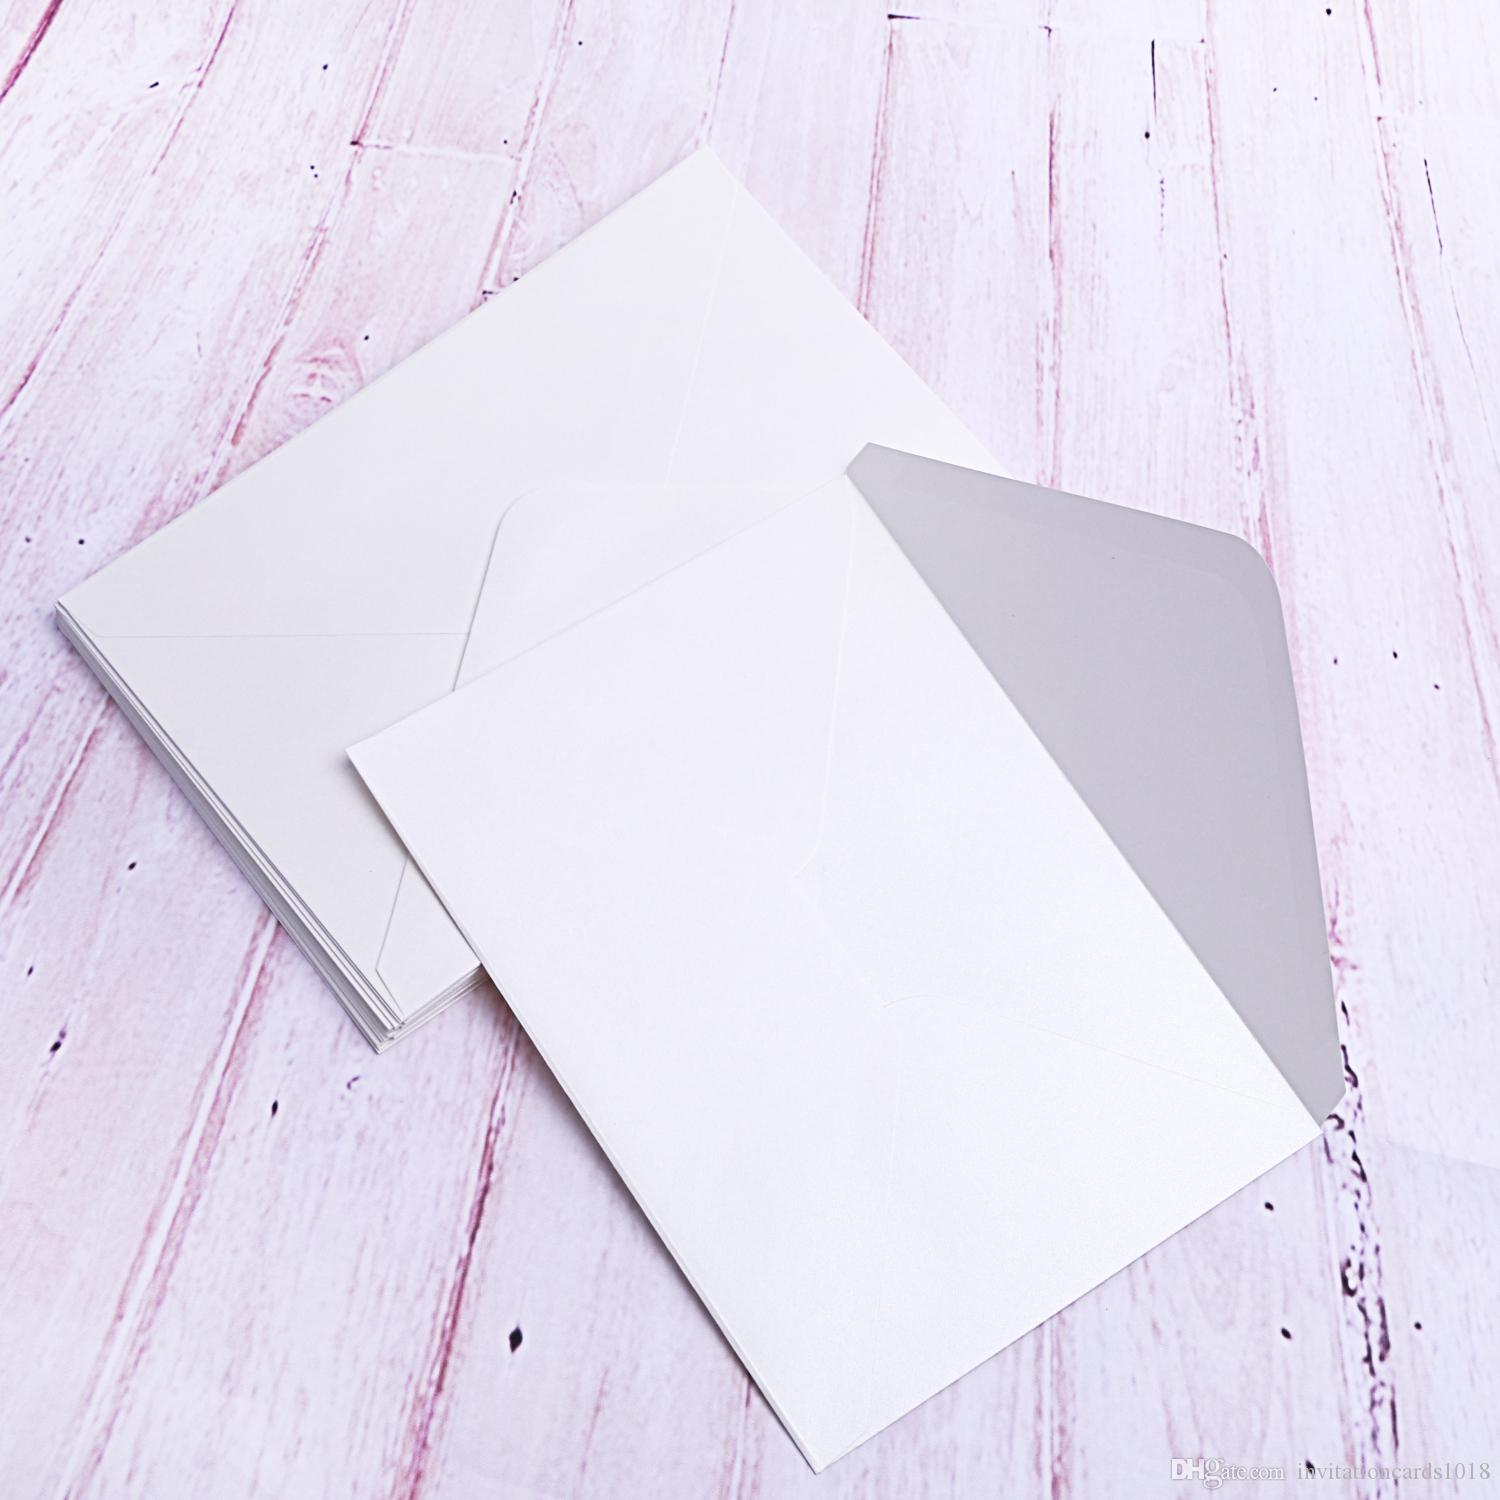 a7 ivory pearl paper envelopes with water based glue pefect for 5x7